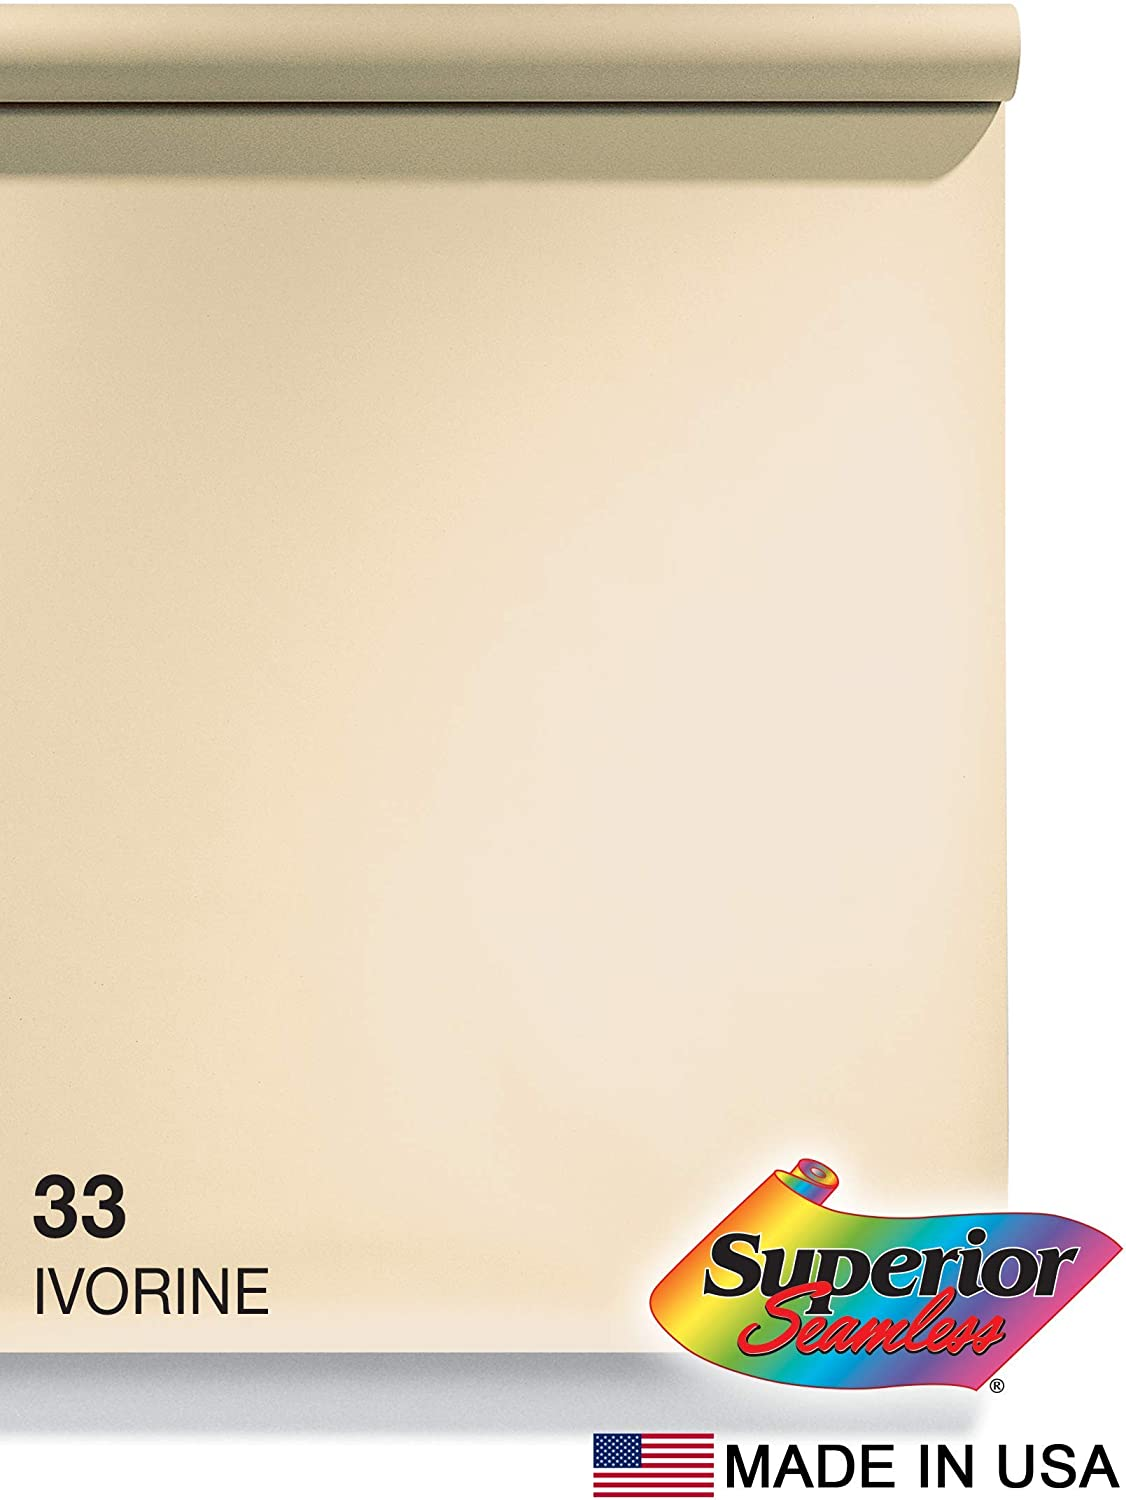 Superior Seamless Photography Background Paper, 33 Ivorine (53 inches Wide x 18 feet Long)